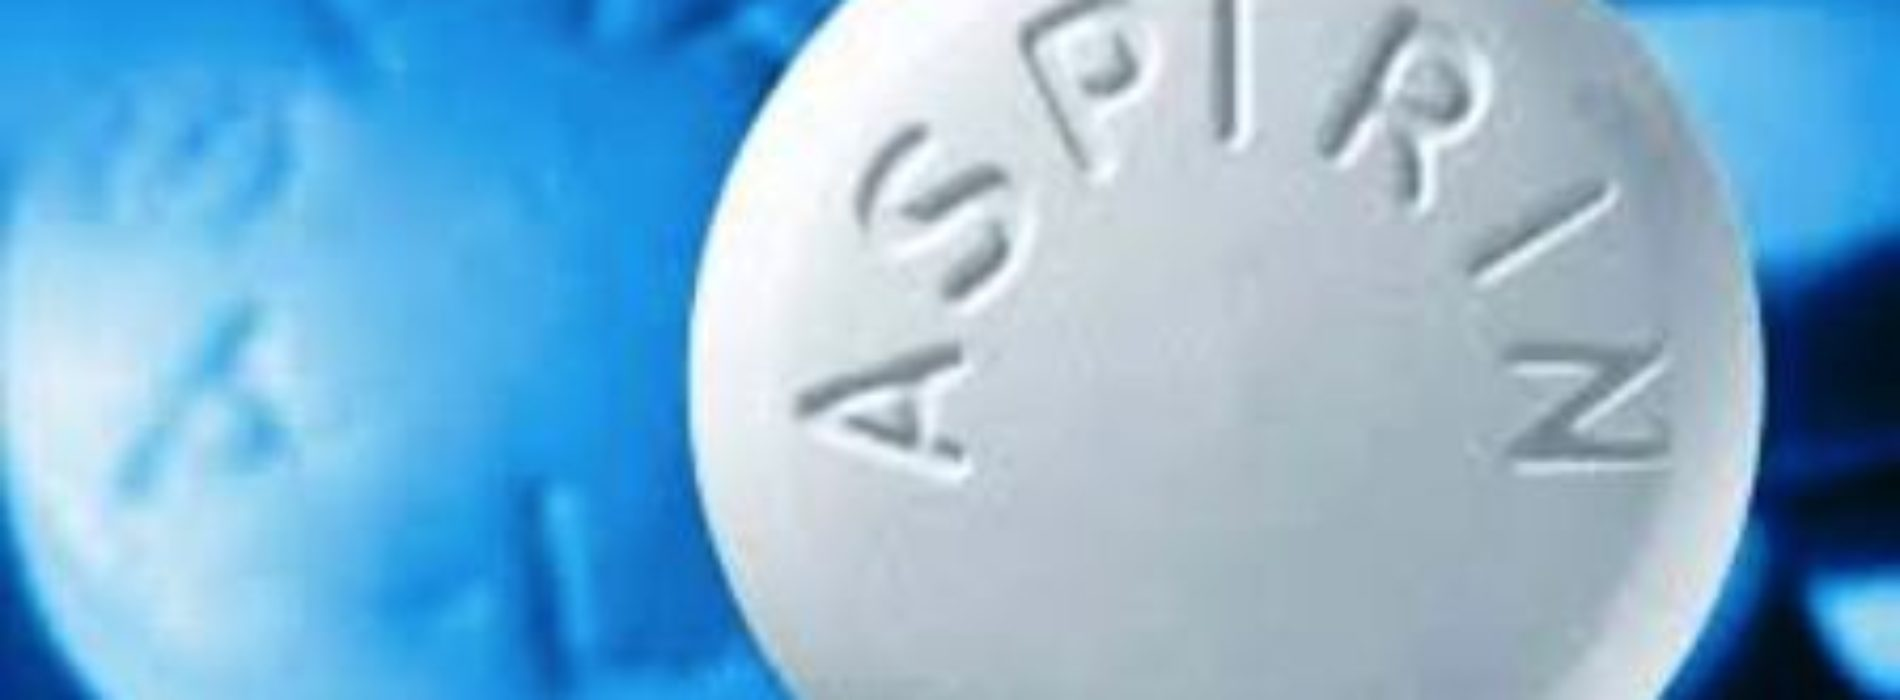 Aspirin may halve air pollution harms